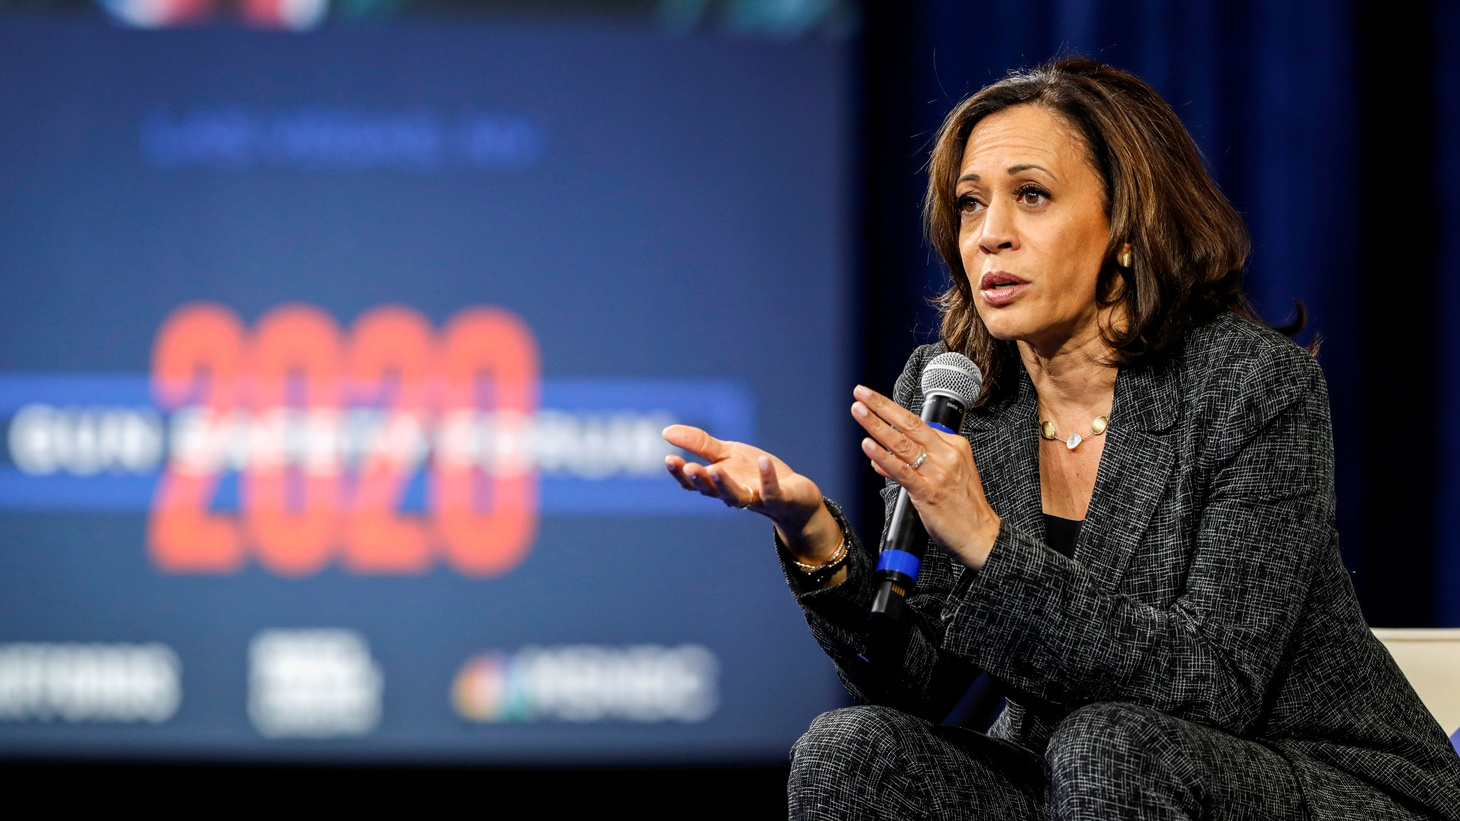 U.S. Democratic presidential candidate Sen. Kamala Harris (D-CA) responds to a question during a forum held by gun safety organizations the Giffords group and March For Our Lives in Las Vegas, Nevada, U.S. October 2, 2019.